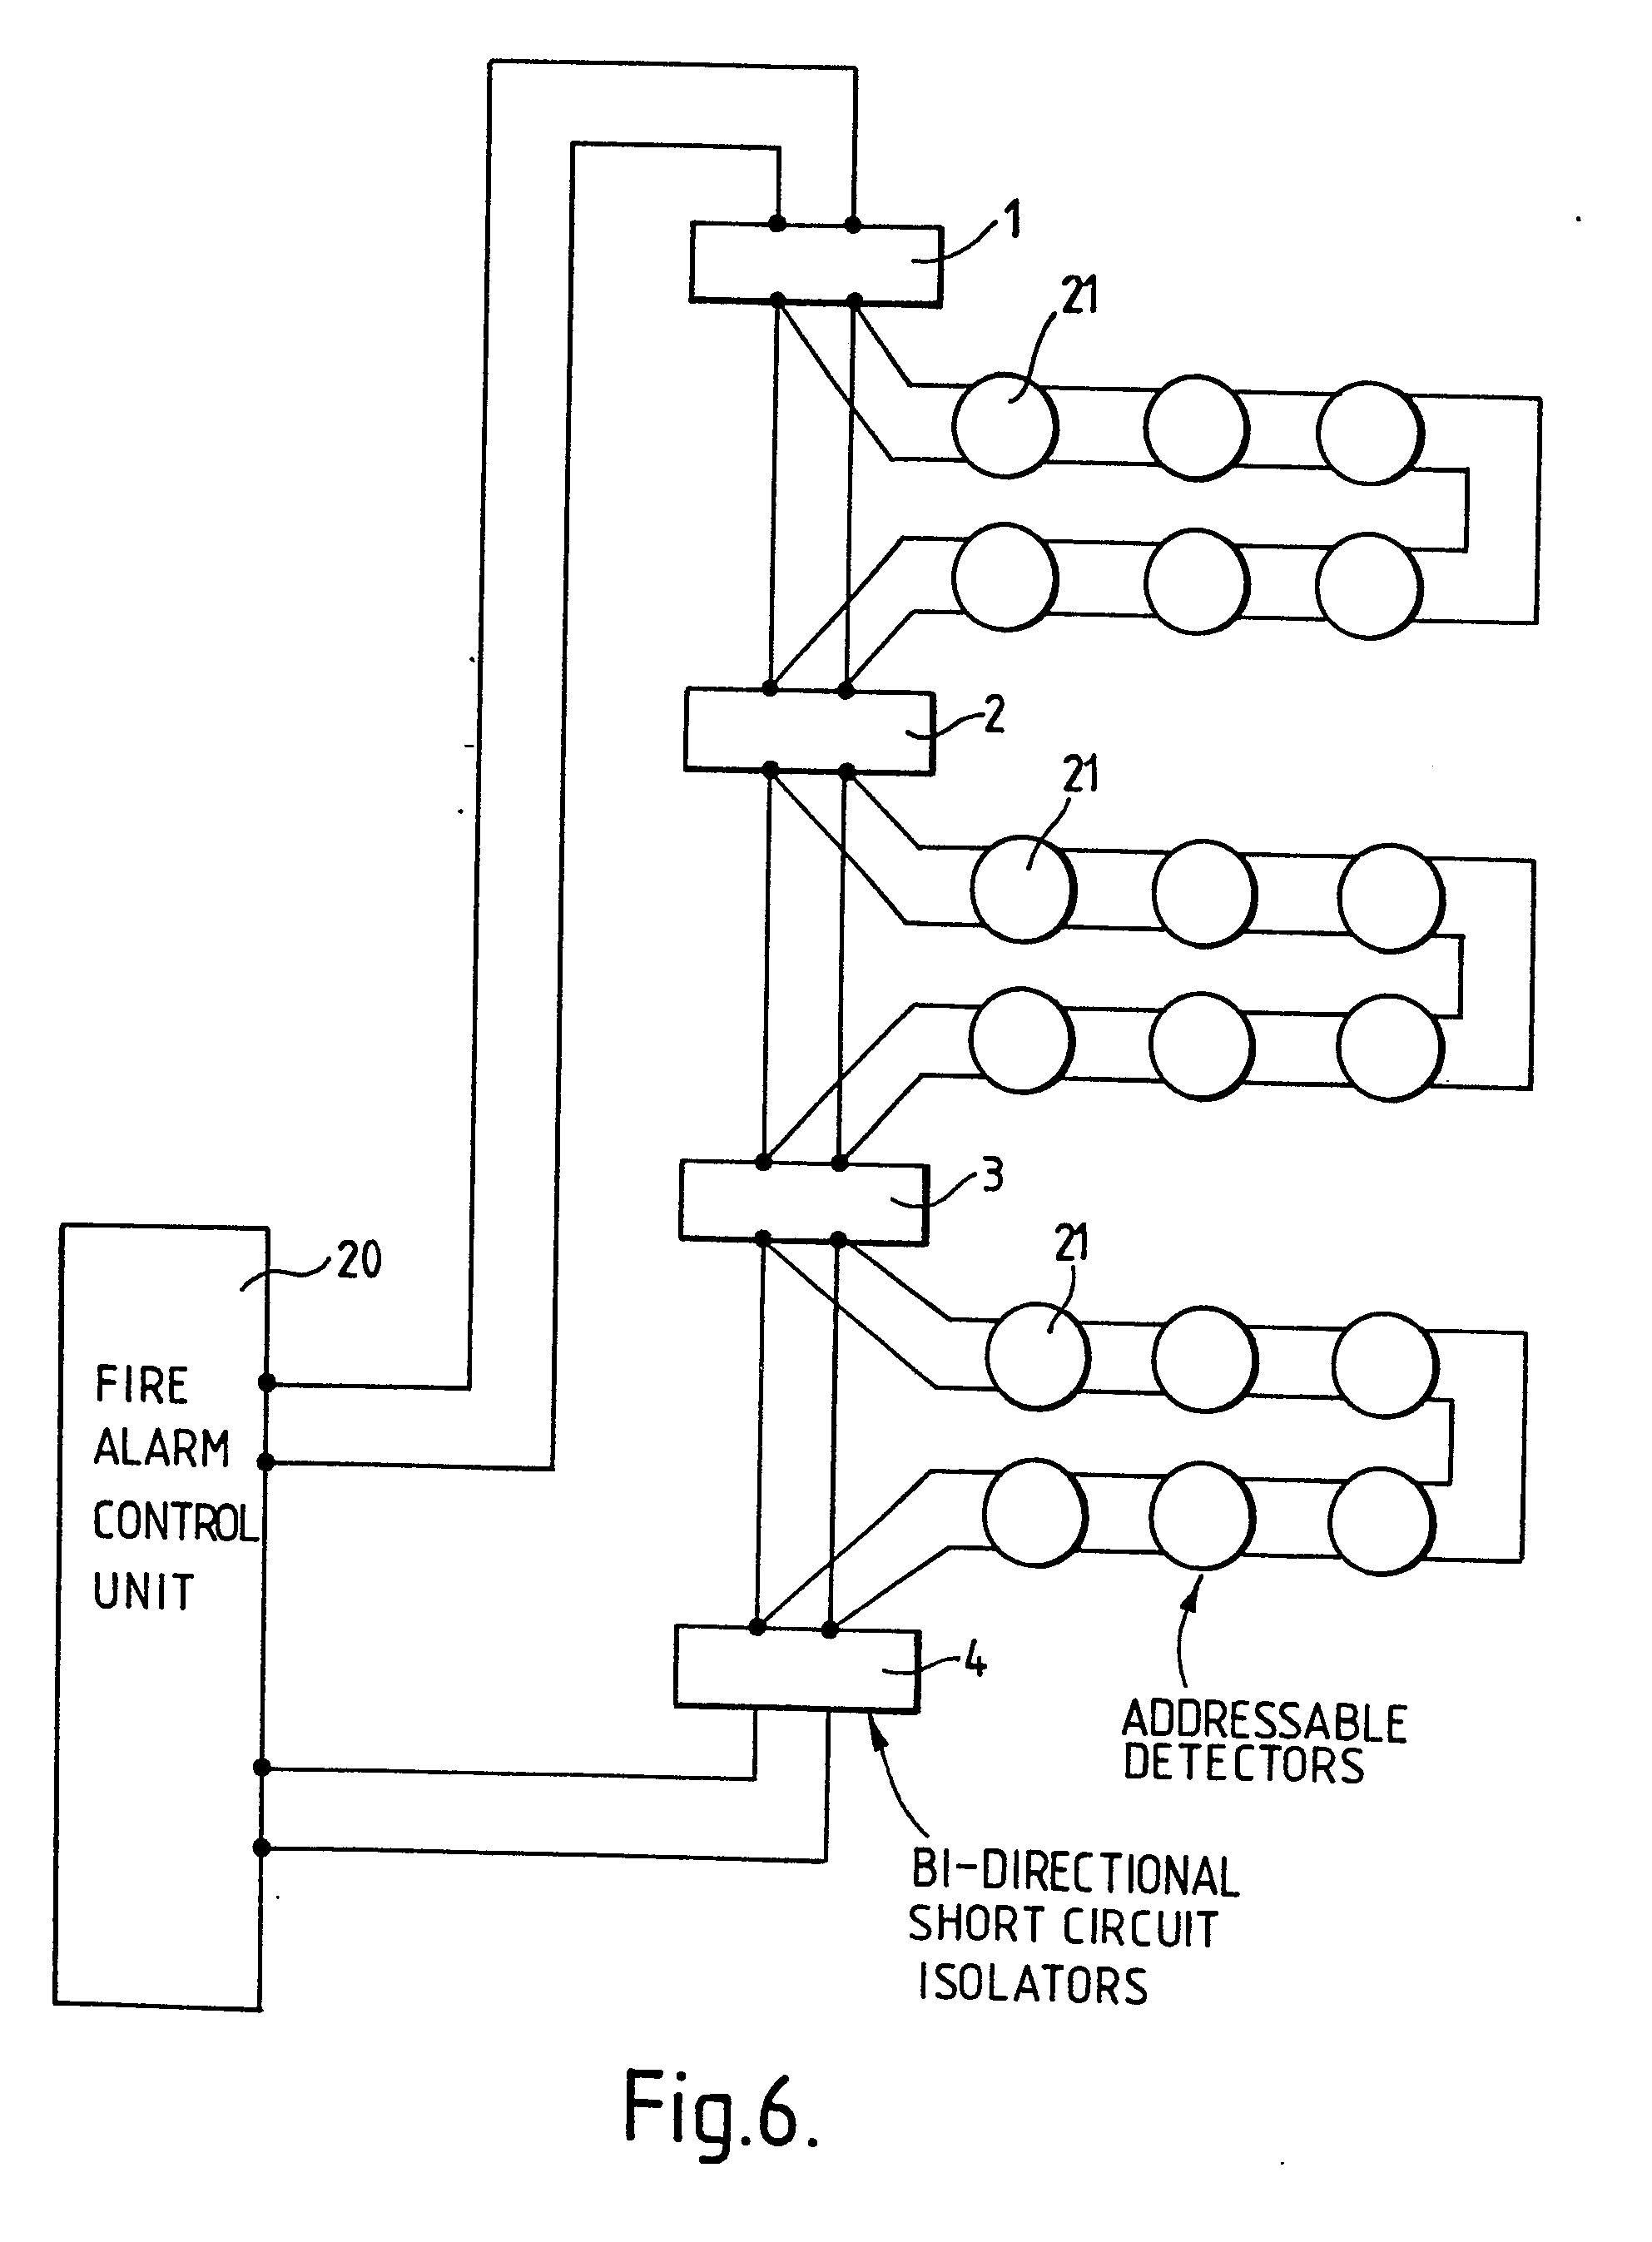 imgf0005 addressable fire alarm circuit diagram circuit and schematics fire alarm wiring schematic at couponss.co